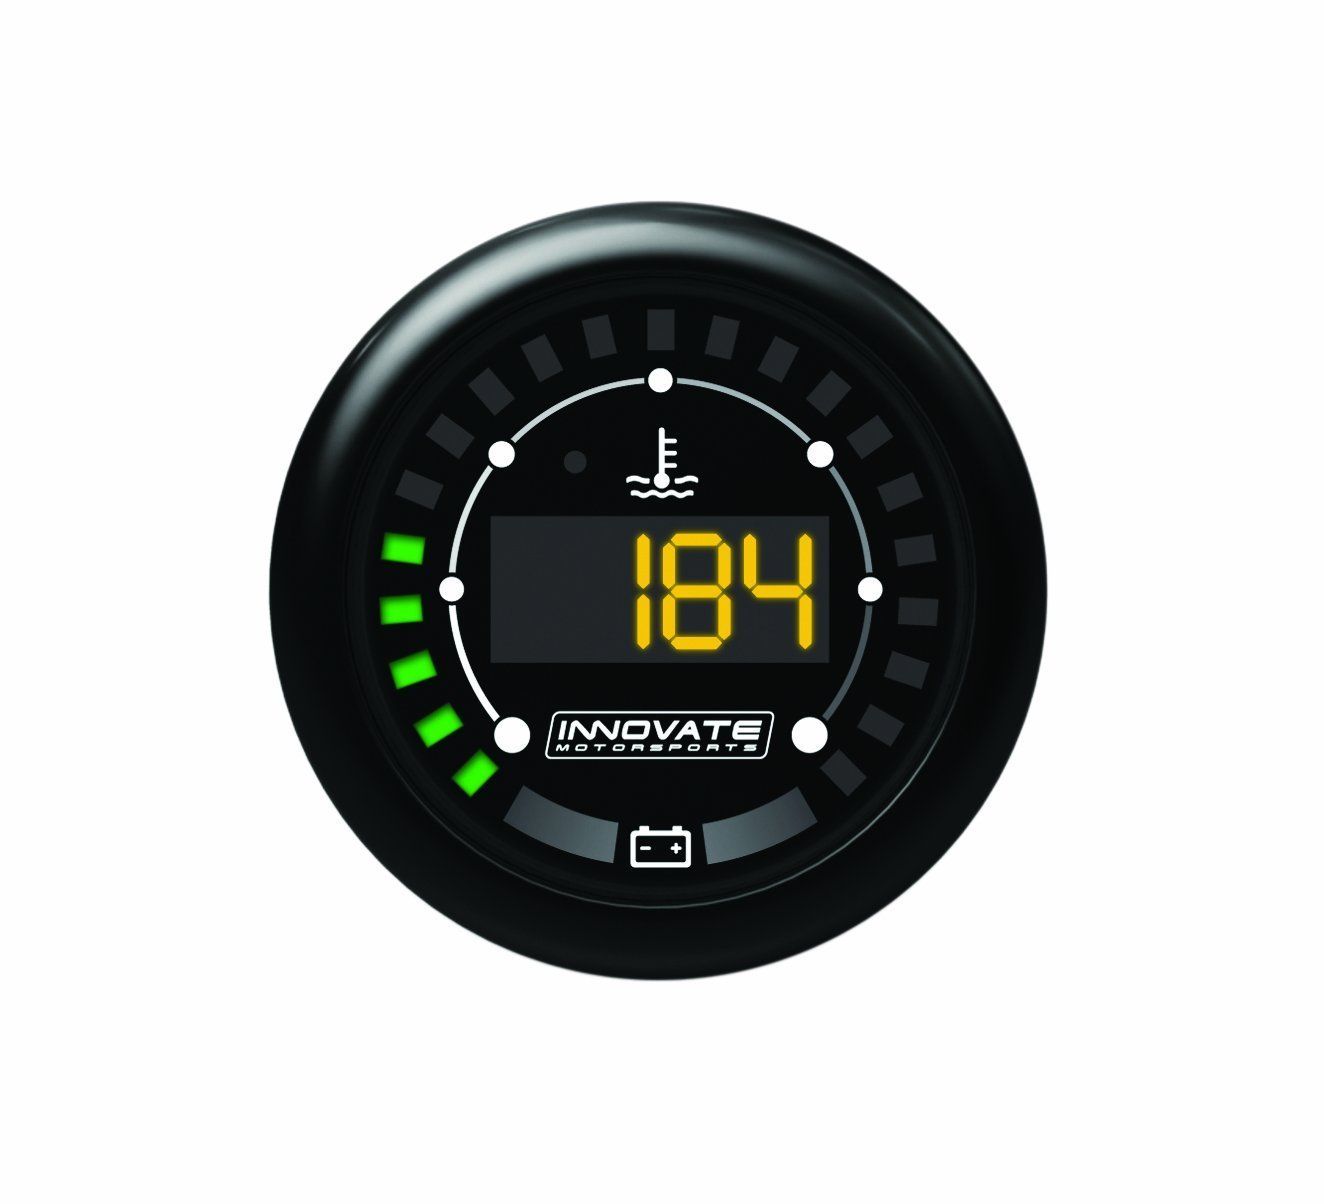 Innovate Motorsports 3853 MTX Digital Series Dual Function Water Temperature and Battery Voltage Gauge Kit by Innovate Motorsports